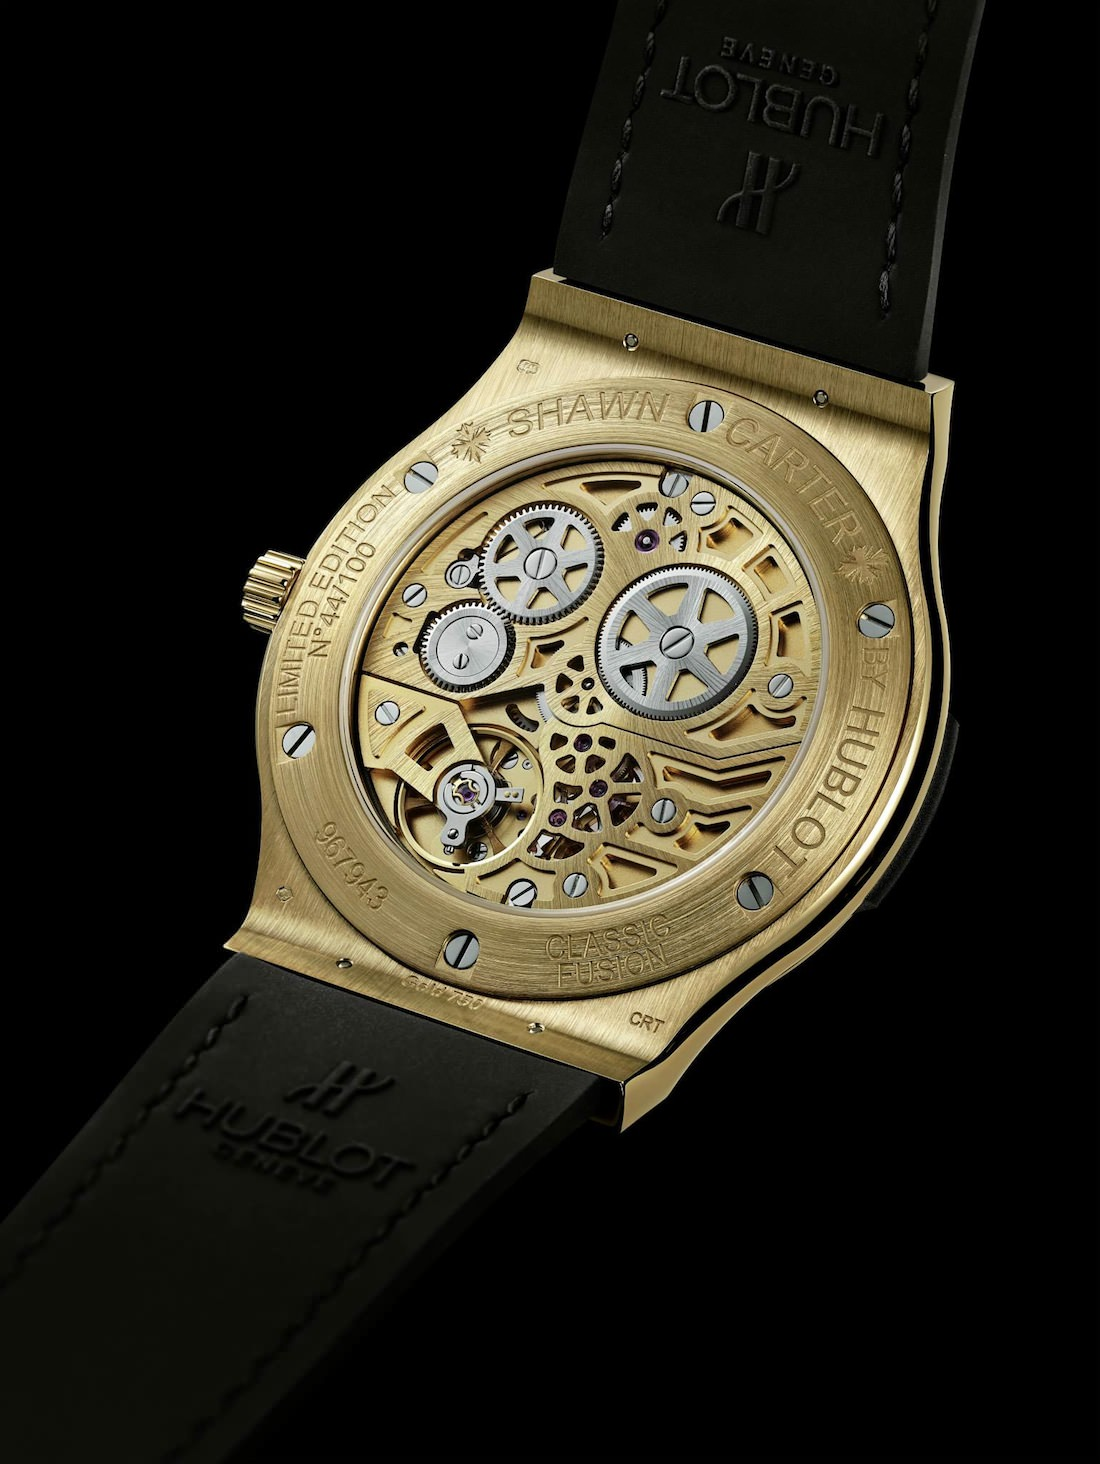 Hublot-Shawn-Carter-jayz-10